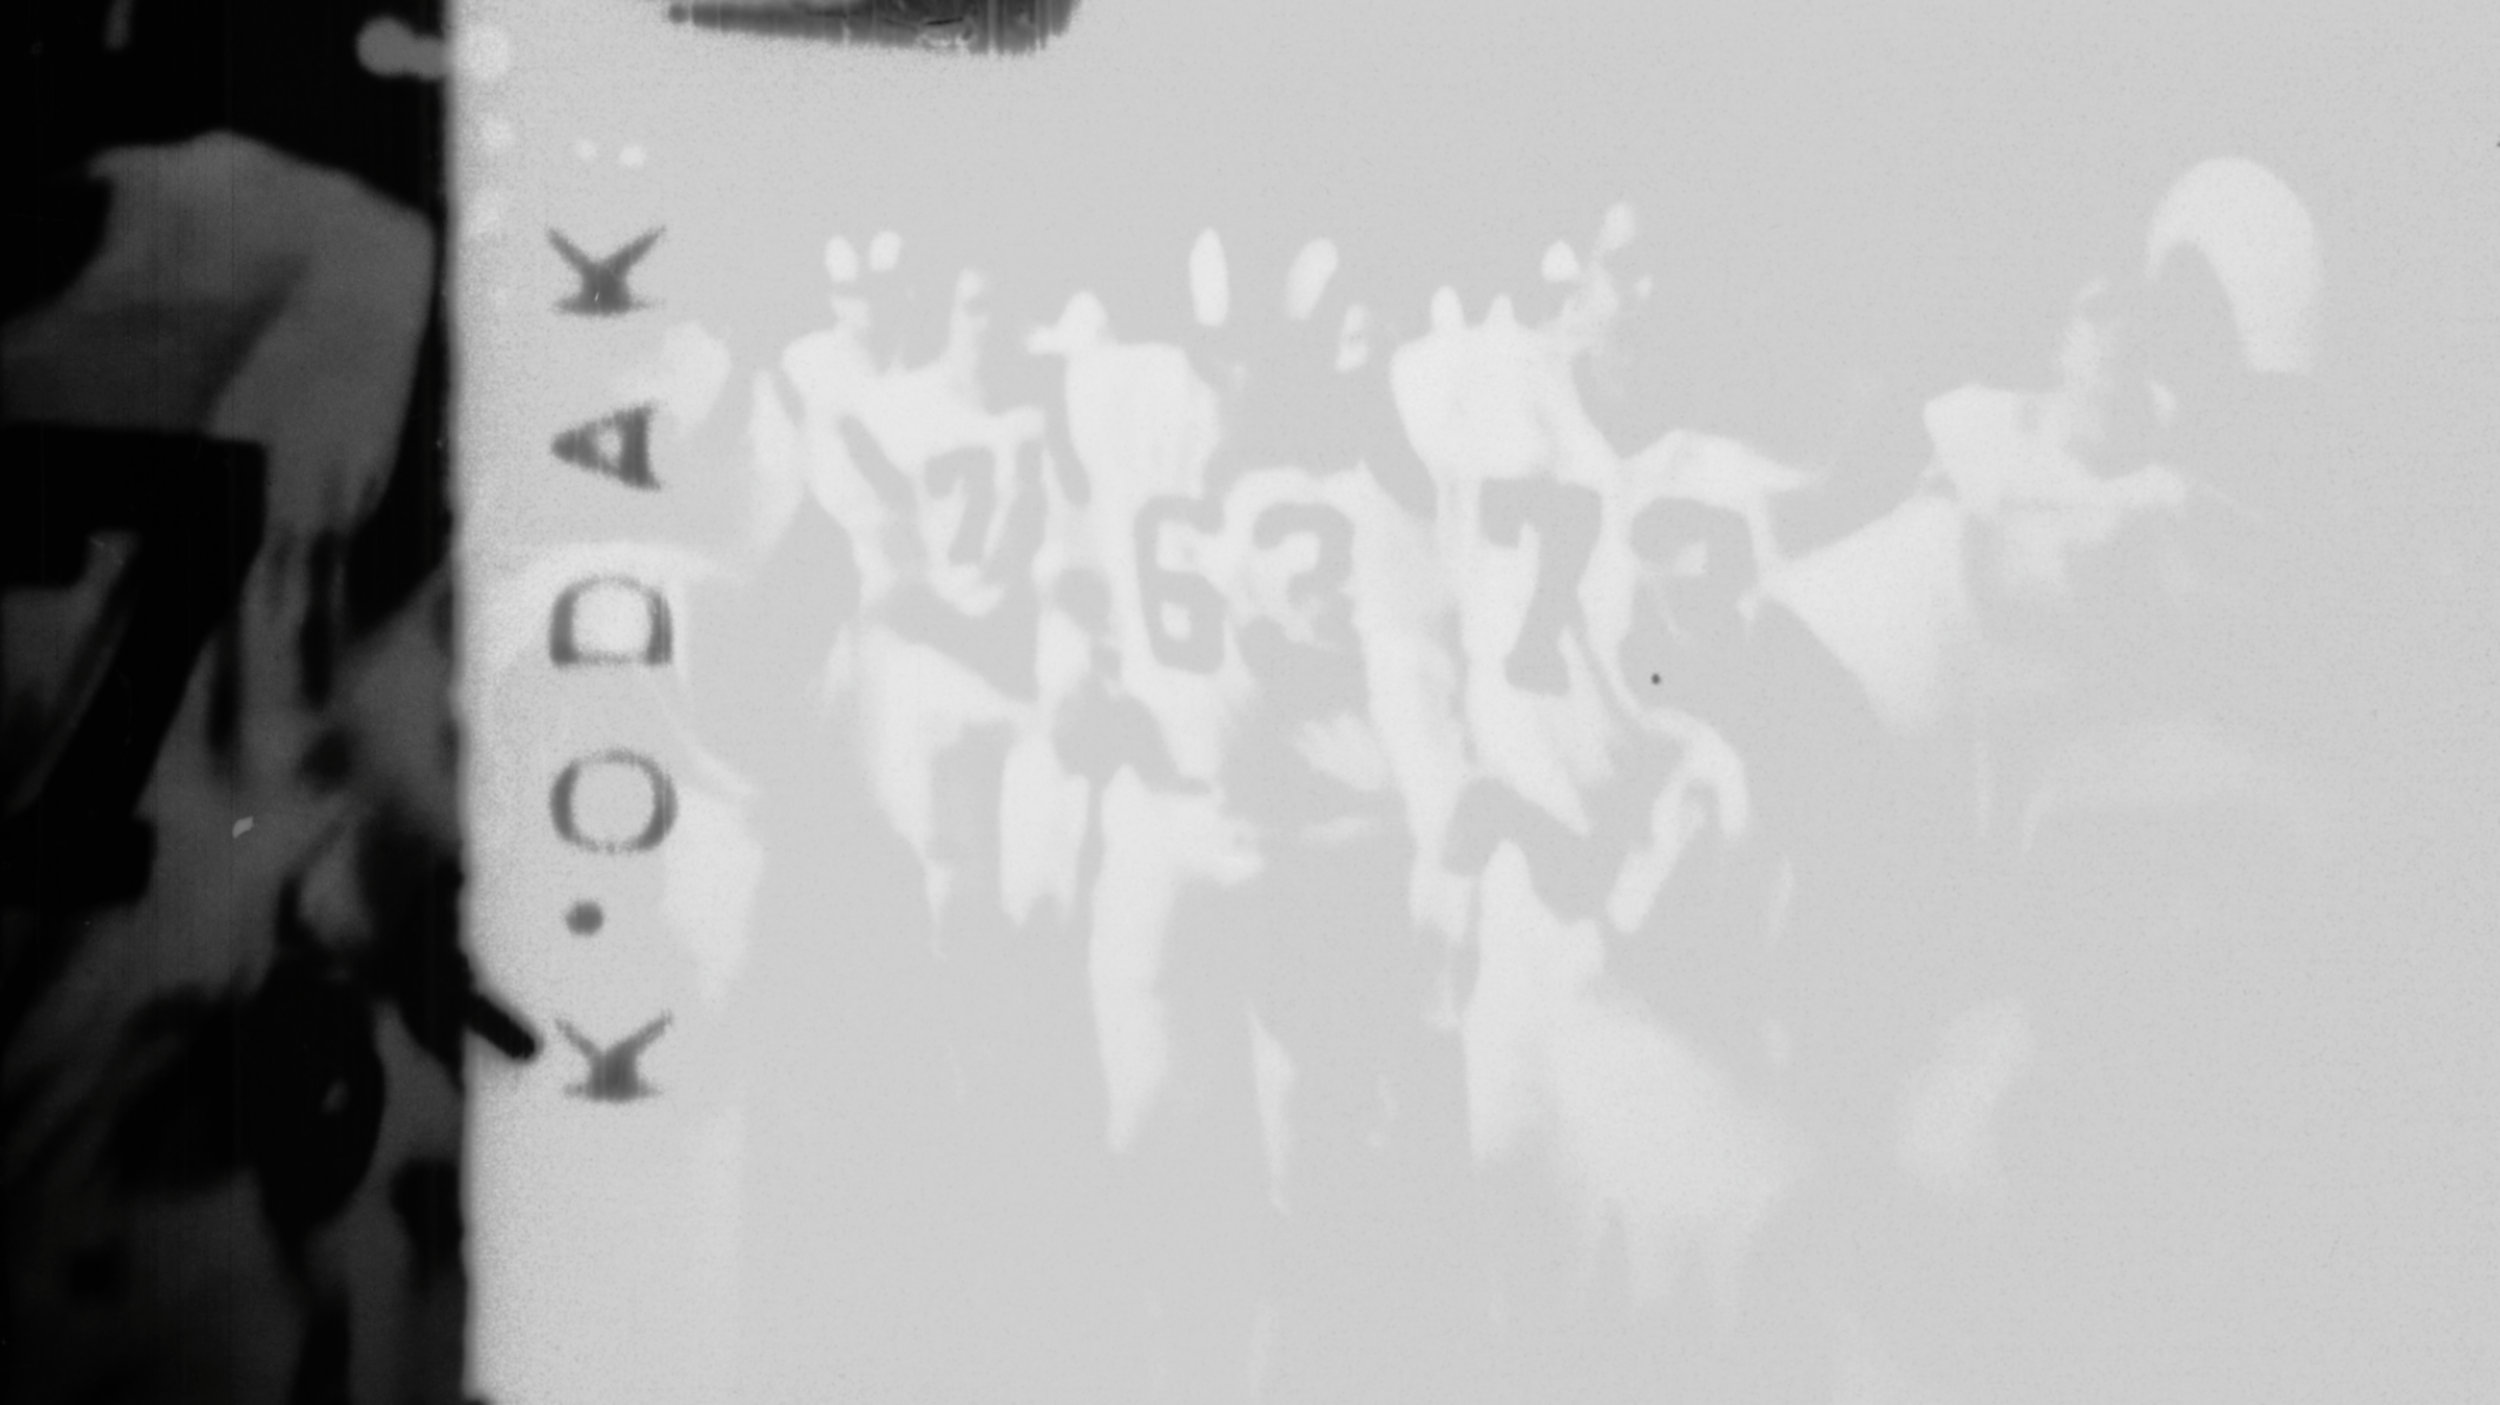 Ghosts of Empire - Ghosts of Empire, a feature-length documentary essay, unpacks the romanticized past of American football to explore its current moment of crisis. The film juxtaposes an analysis of the game's heroic treatment in the narrative documentaries of NFL Films with a reflection on football's concussion epidemic and its fallout.